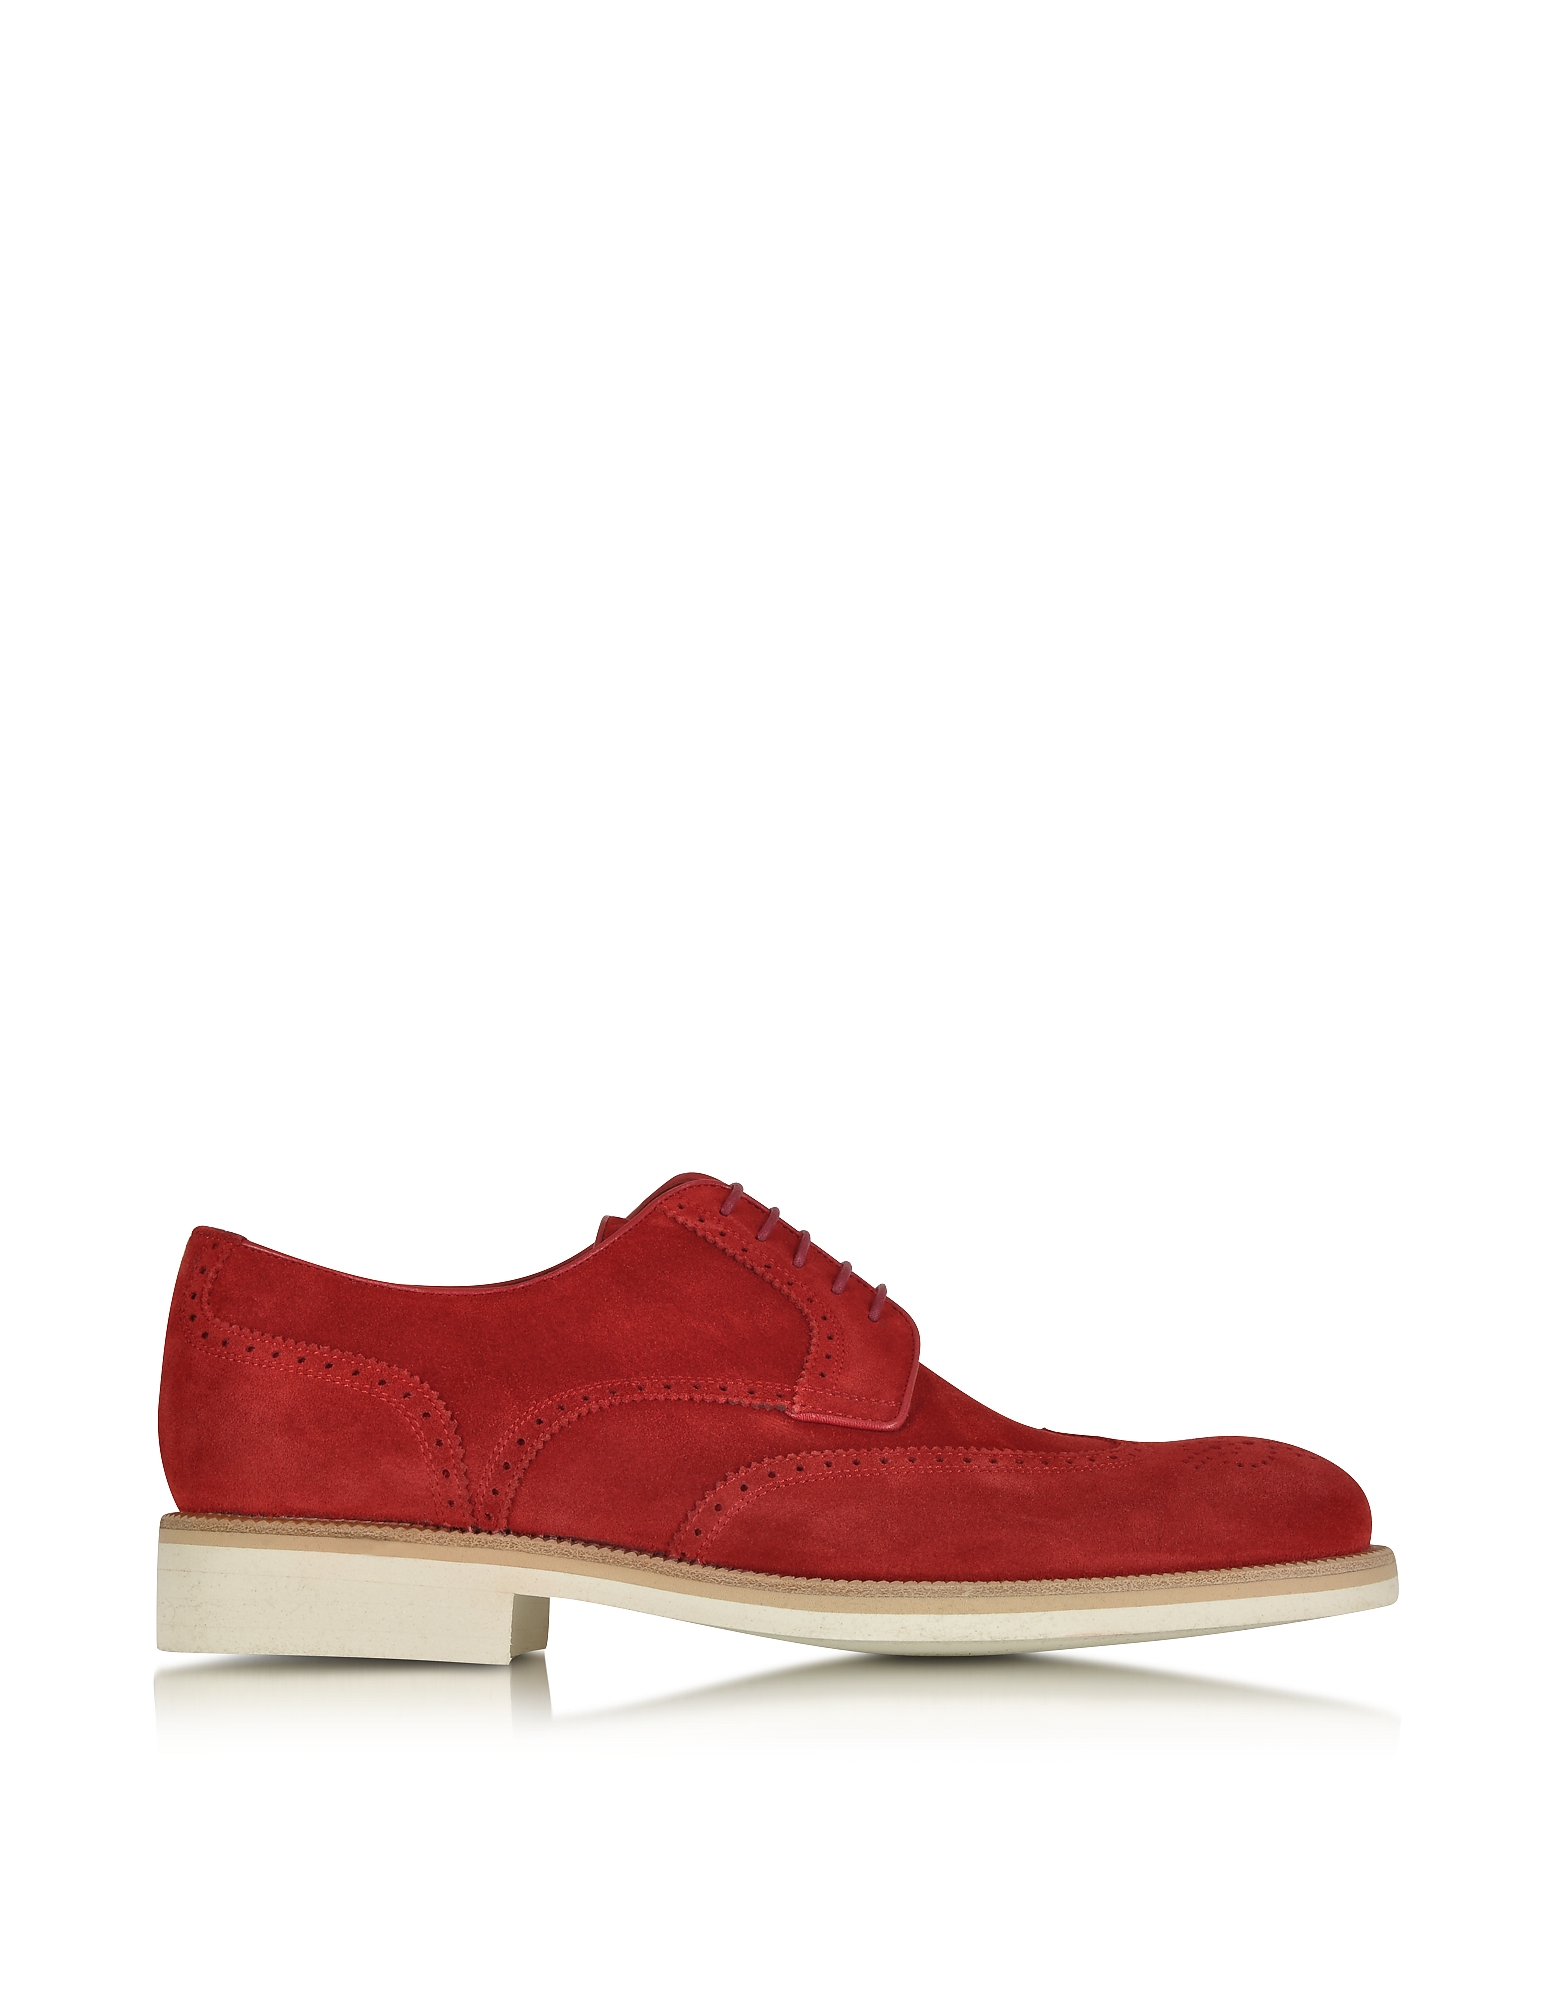 A.Testoni Designer Shoes, Garofano Suede Derby Shoe